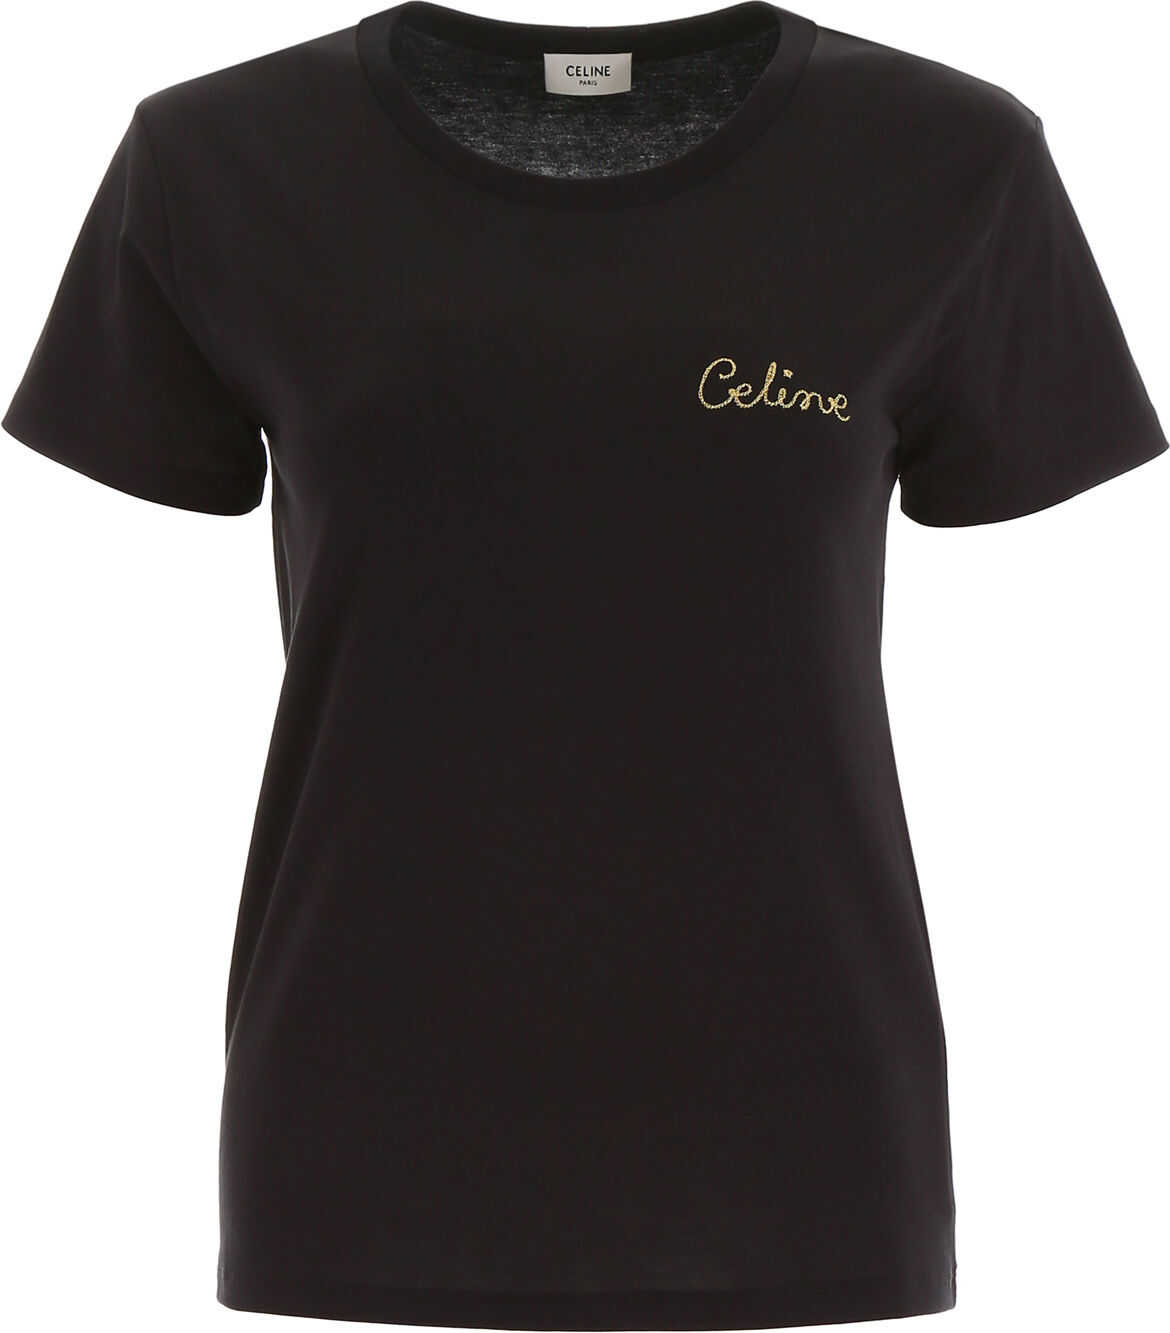 Céline T-Shirt With Embroidered Logo BLACK